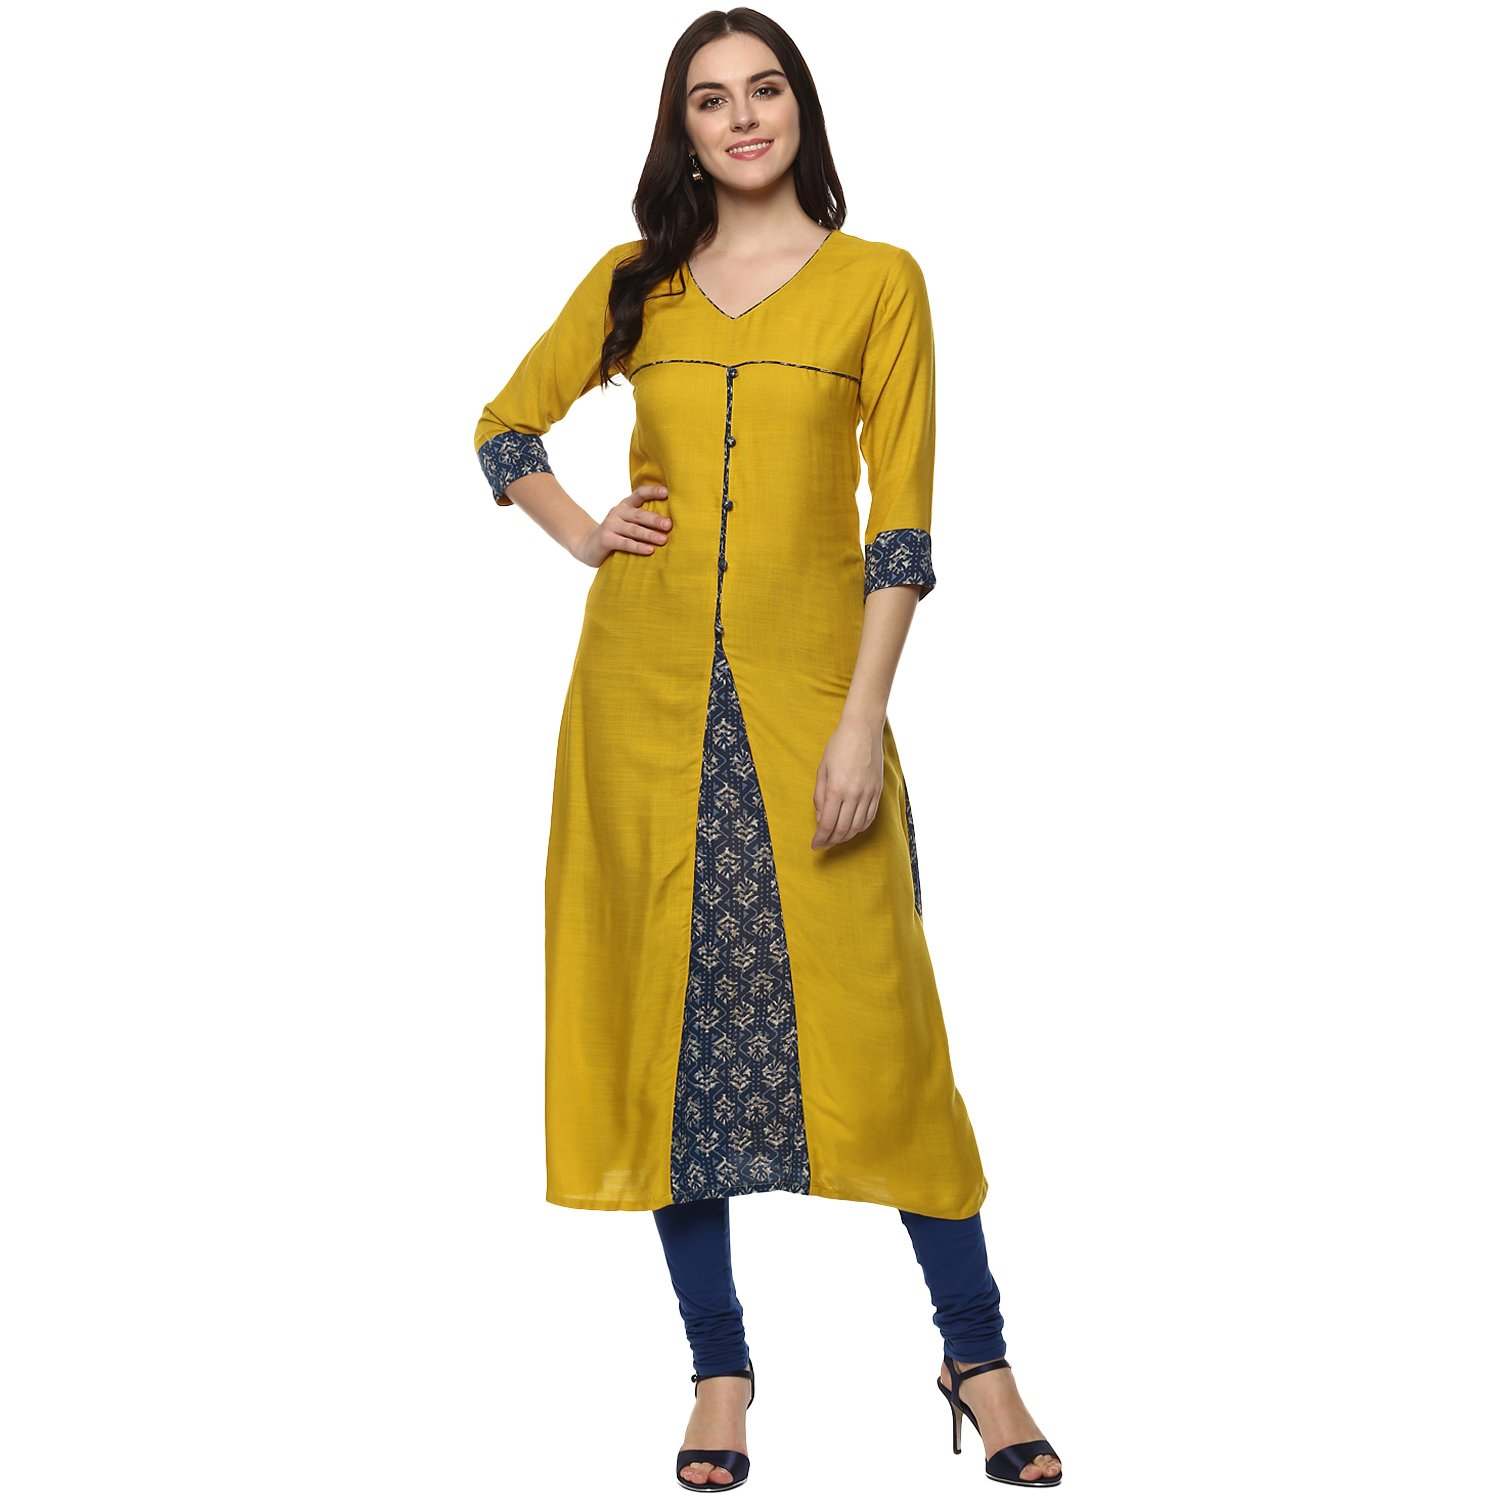 Aahwan Indian Kurtis for Women Mustard Solid and Printed Rayon A-line Half Sleeves Calf Long Dress X-Large Yellow